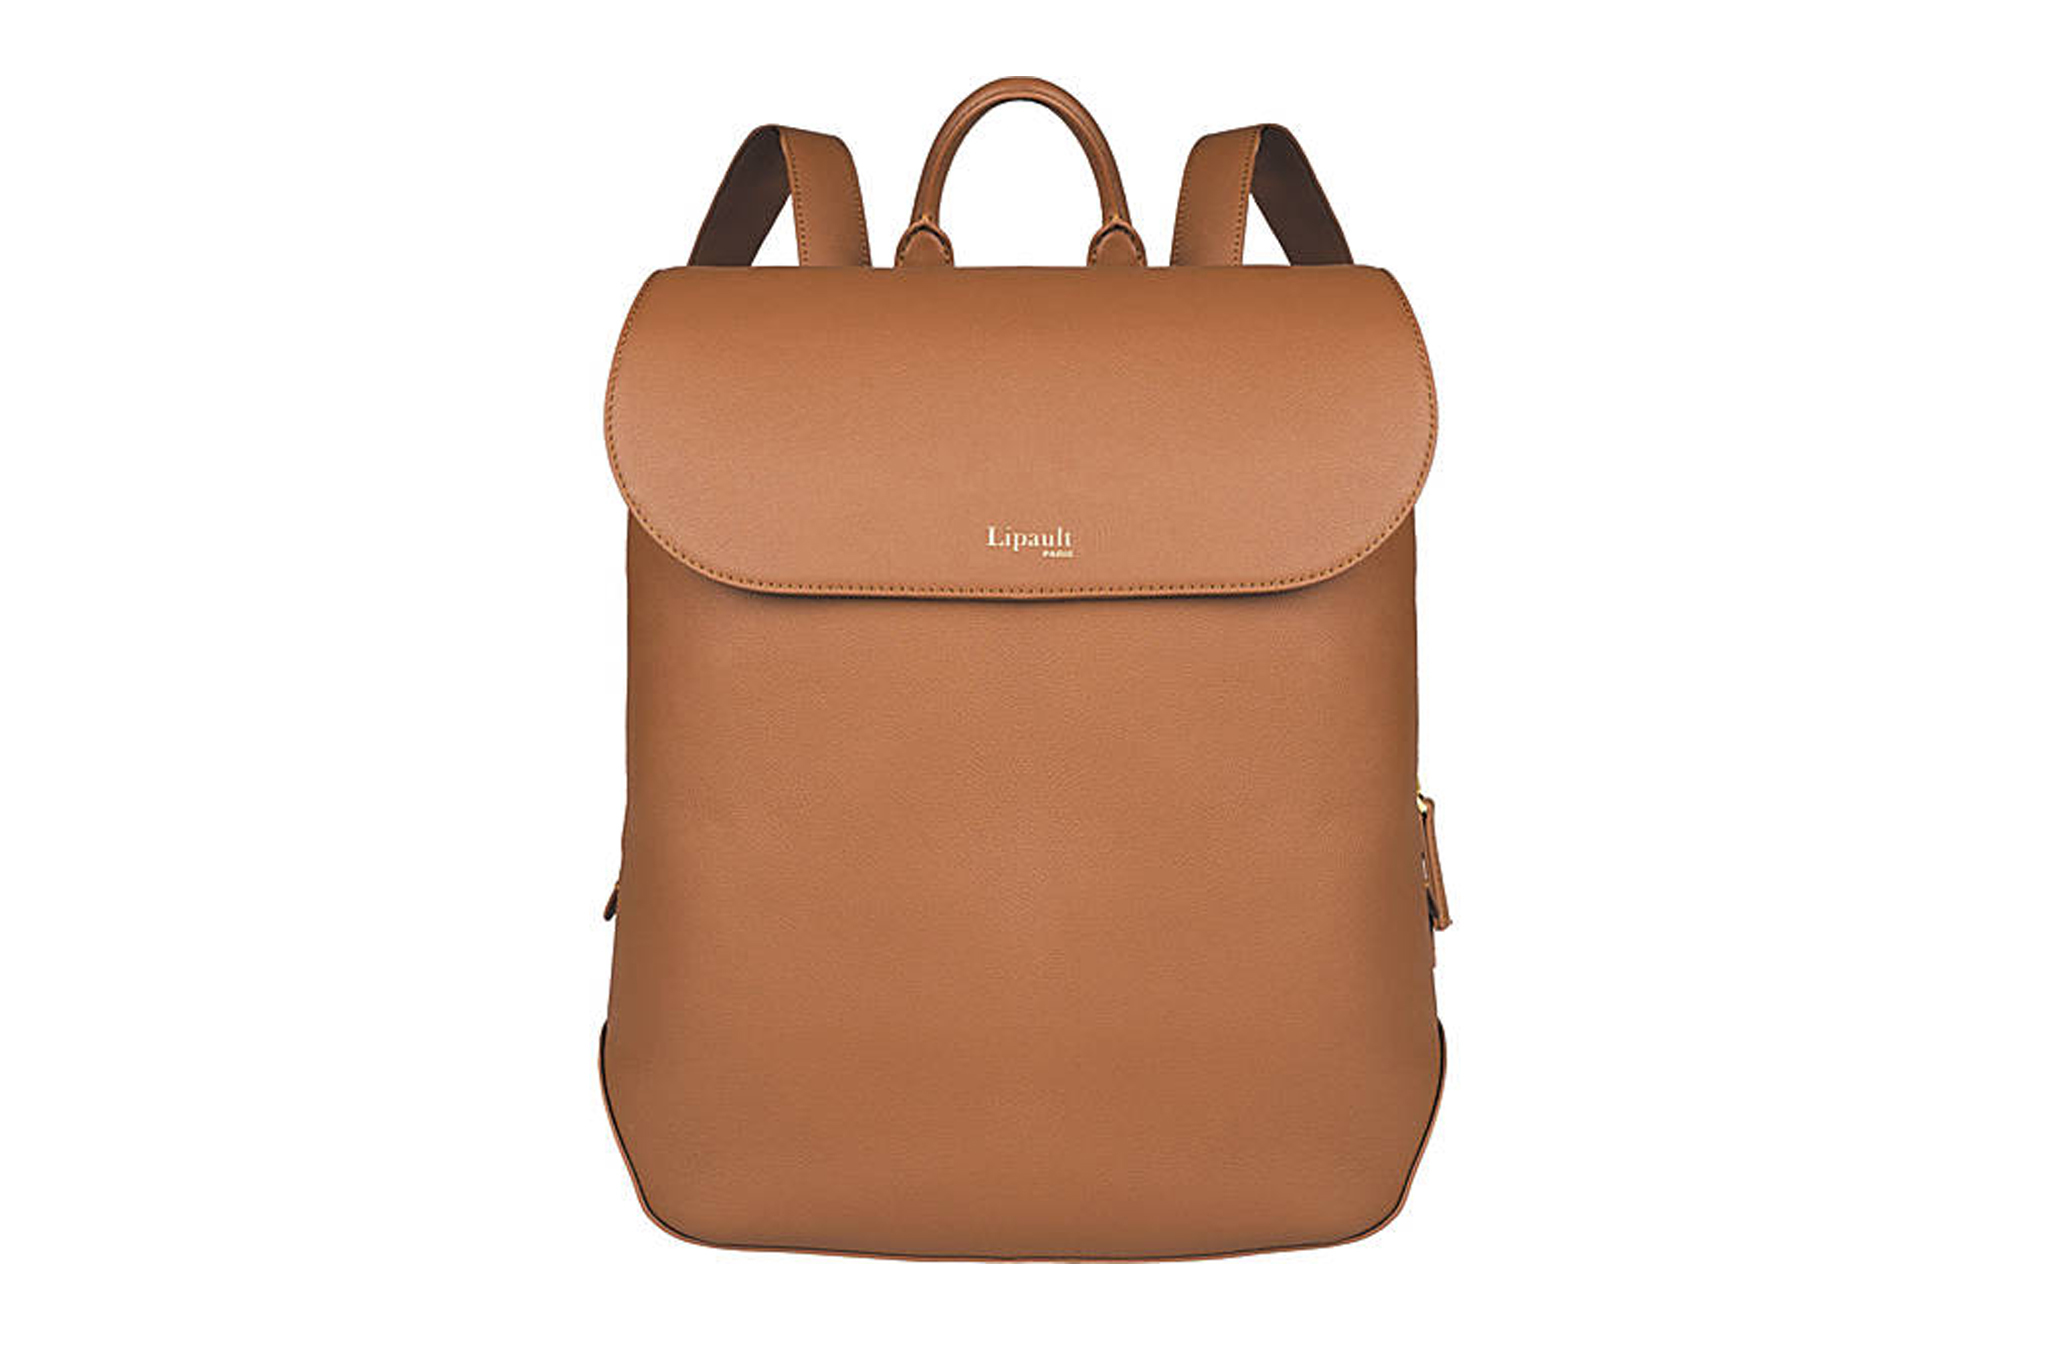 Lipault Paris Plume Elegance Medium Leather Laptop Backpack